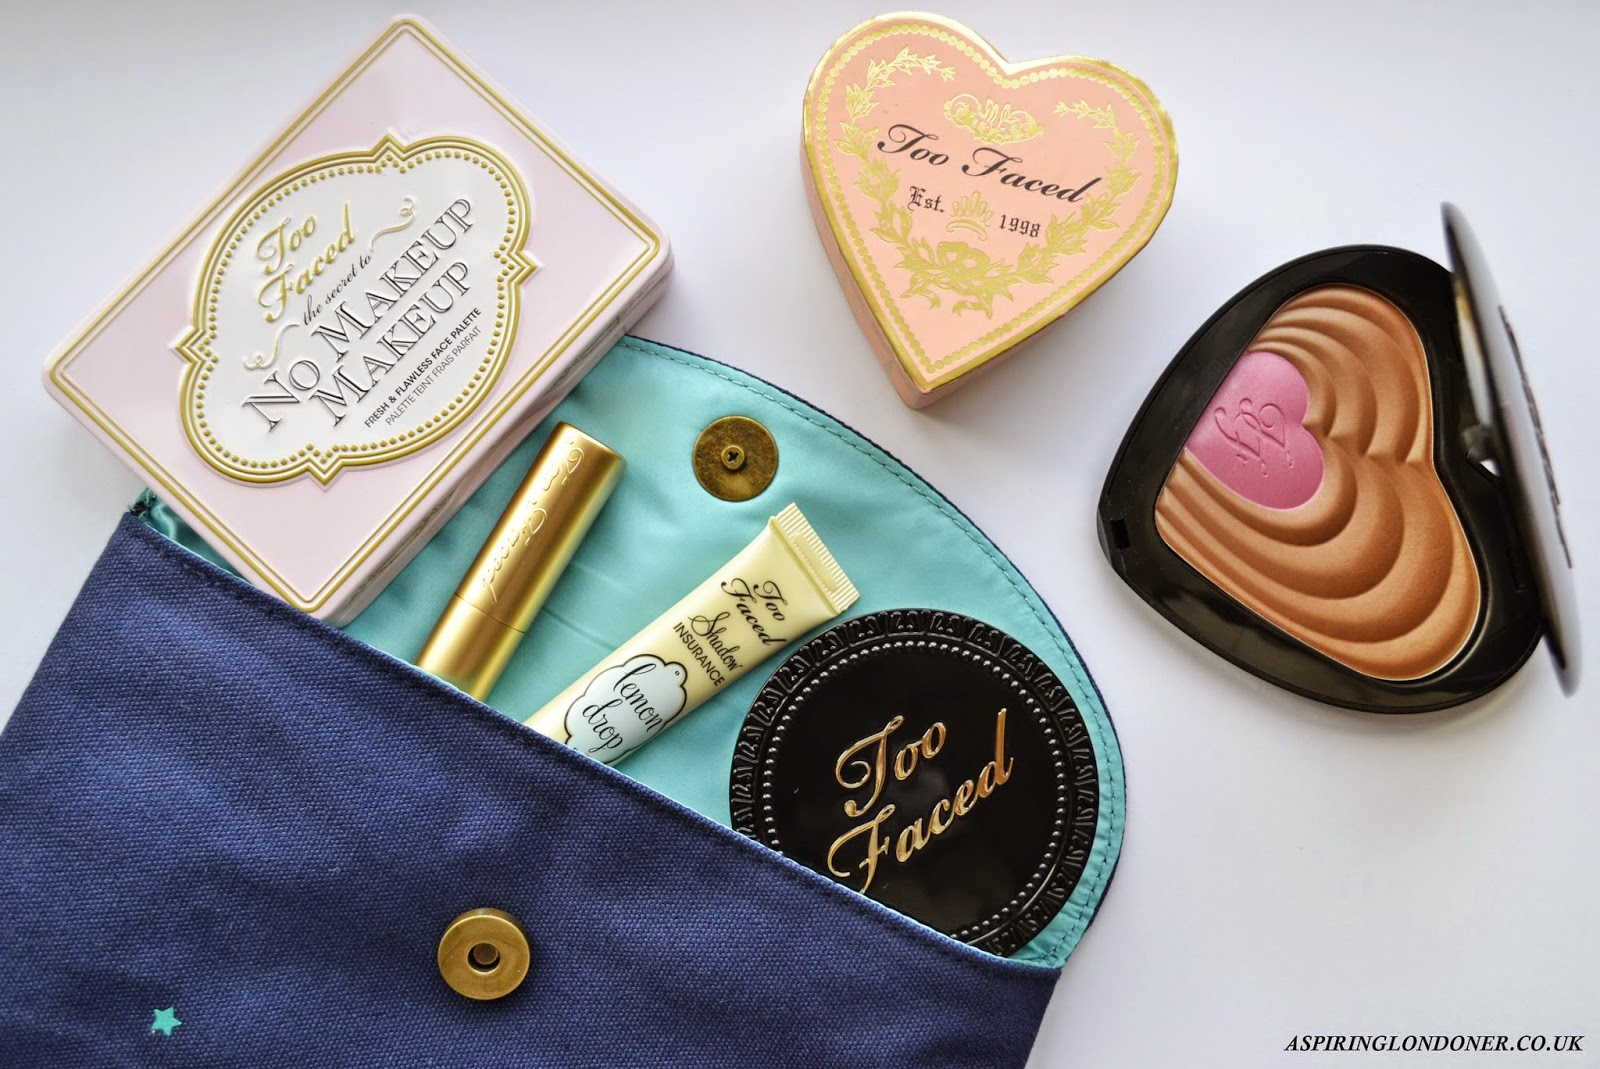 Too Faced founder Jerrod Blandino took to Instagram to share the news that Too Faced pop up shops will be opening in Debehams and Selfridges across the UK.